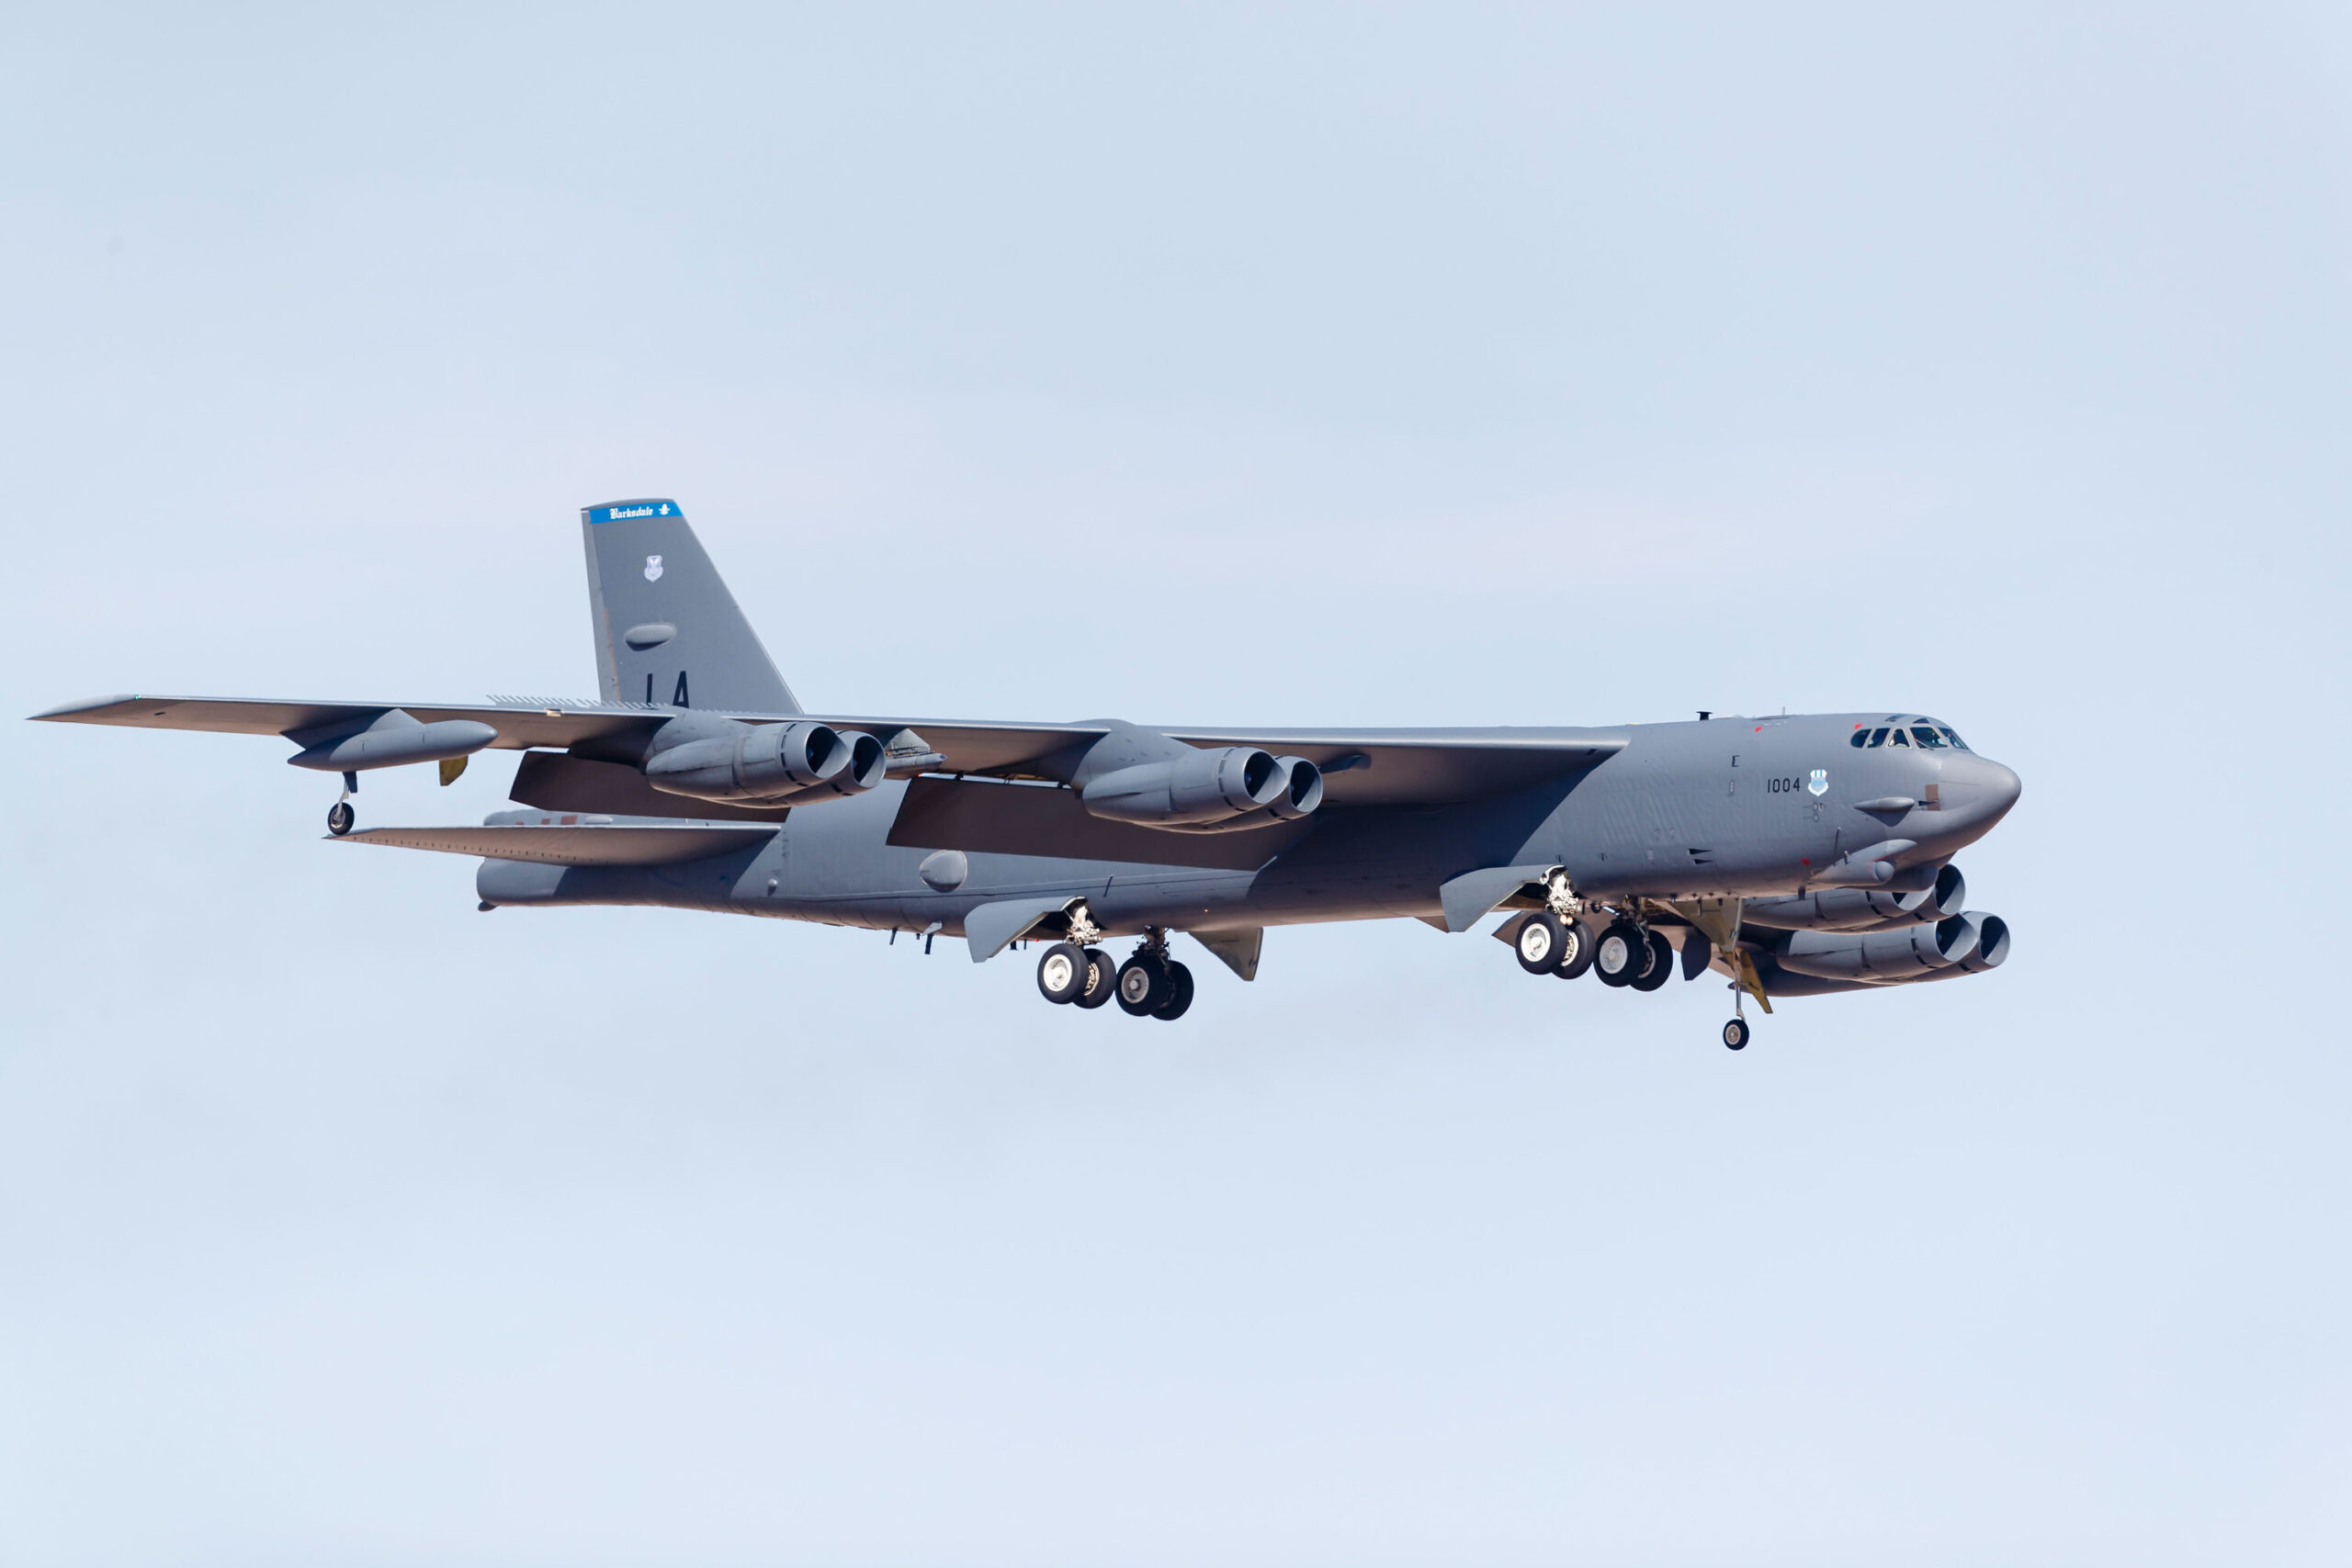 <i>Rob Edgcumbe/STKRF/AP Photo</i><br/>A file photo of a US Air Force B-52H Stratofortress on final approach to Nellis Air Force Base